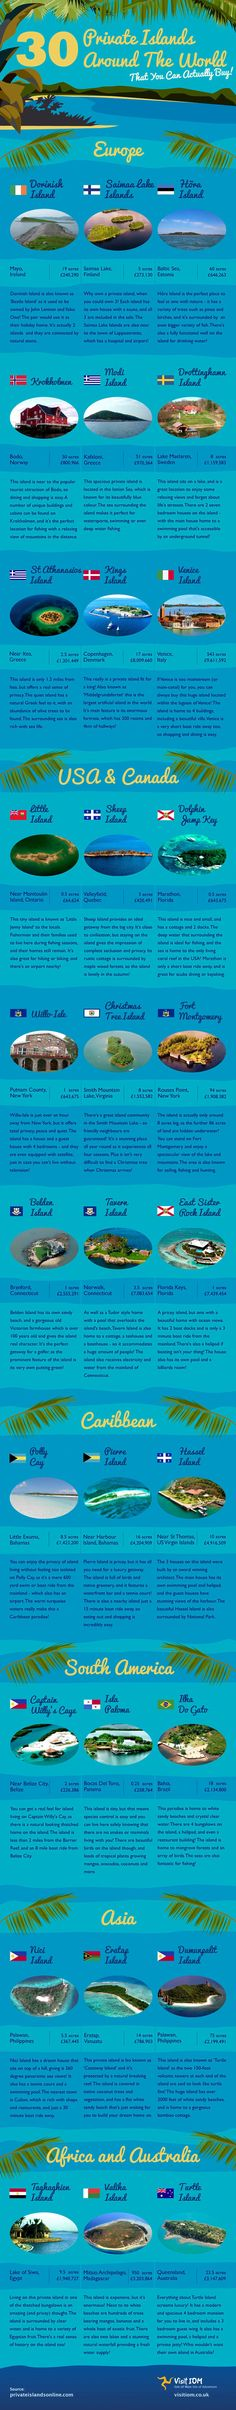 Infographic reveals 30 private islands up for sale | Daily Mail Online